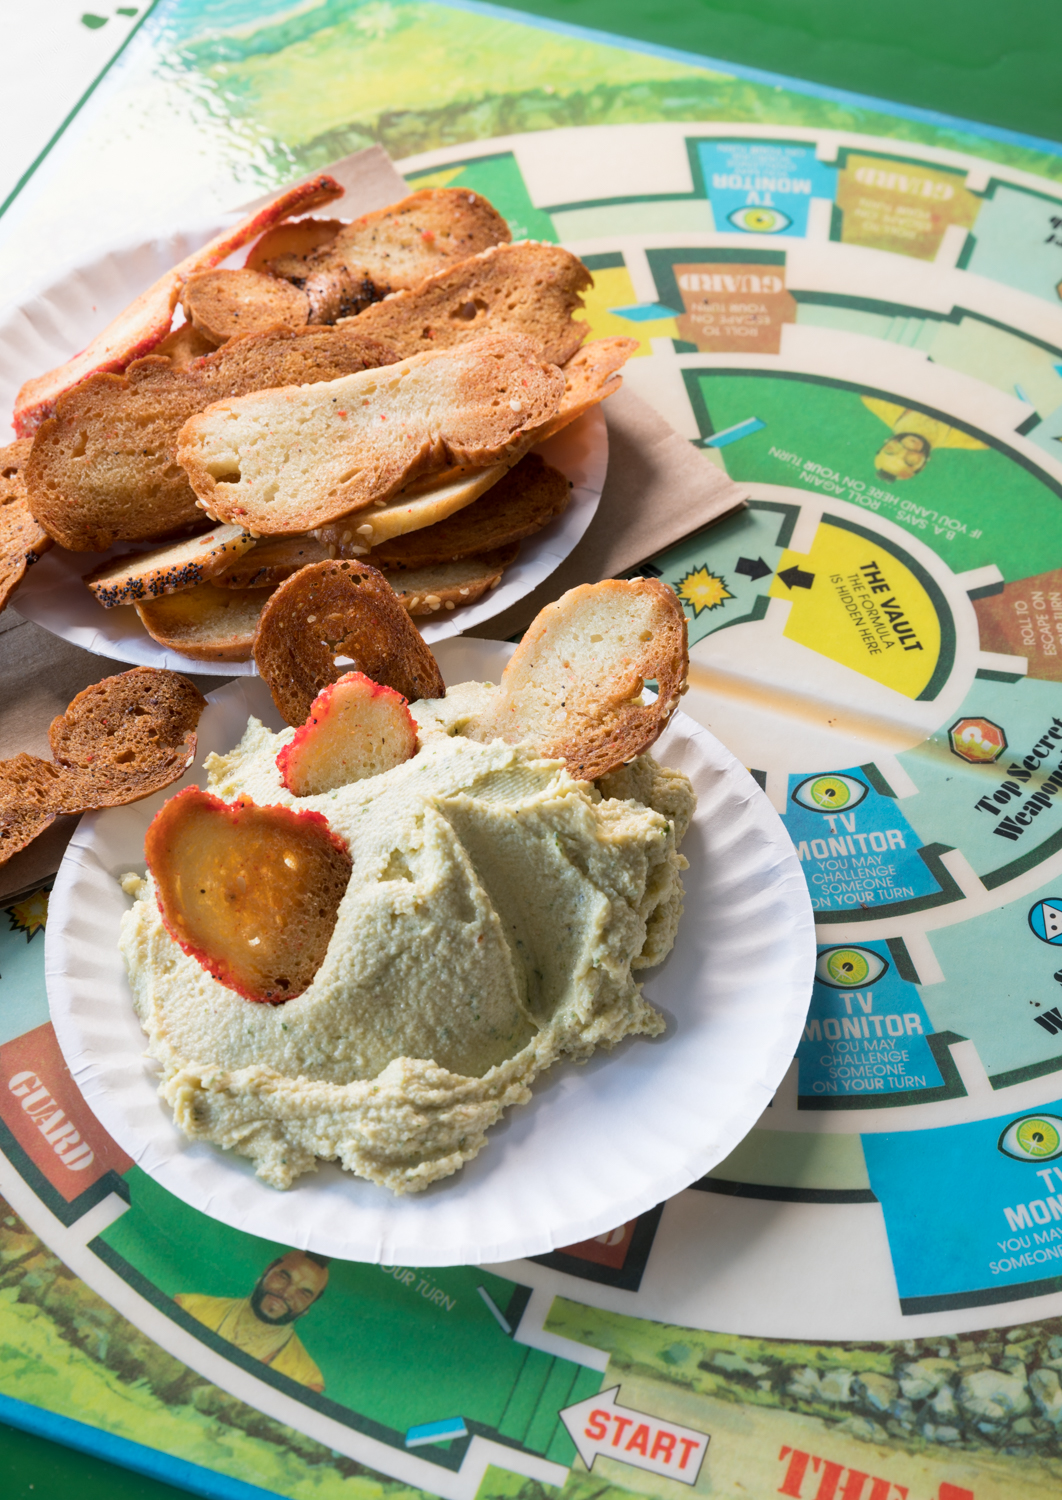 Bagel chips and hummus{ }/ Image: Marlene Rounds // Published: 2.21.19